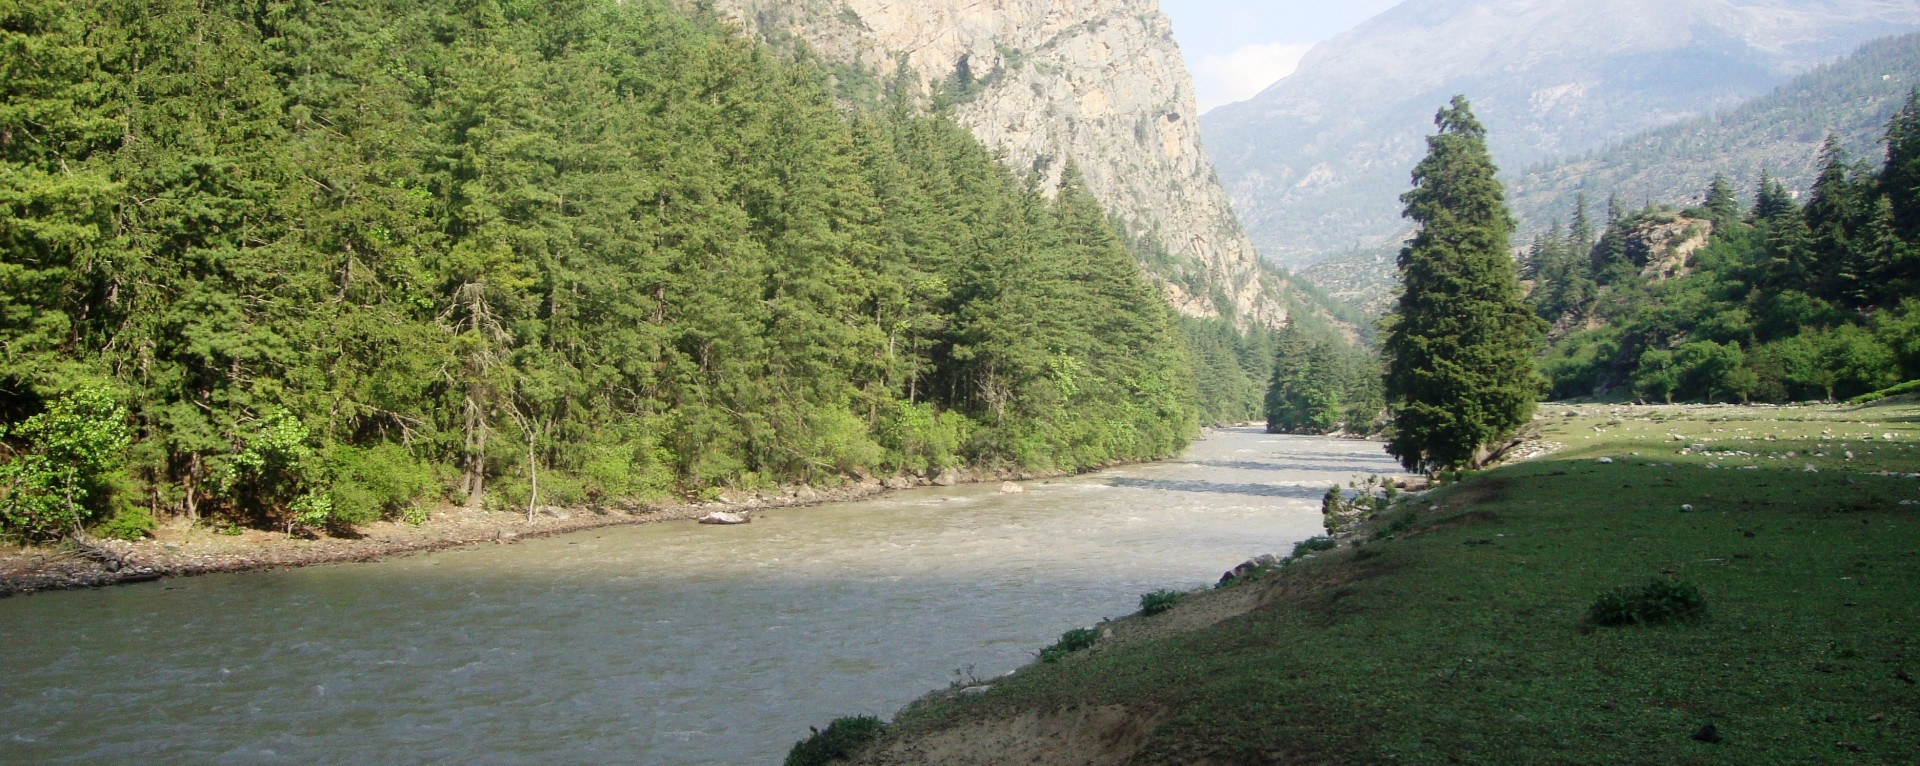 The Karnali river valley